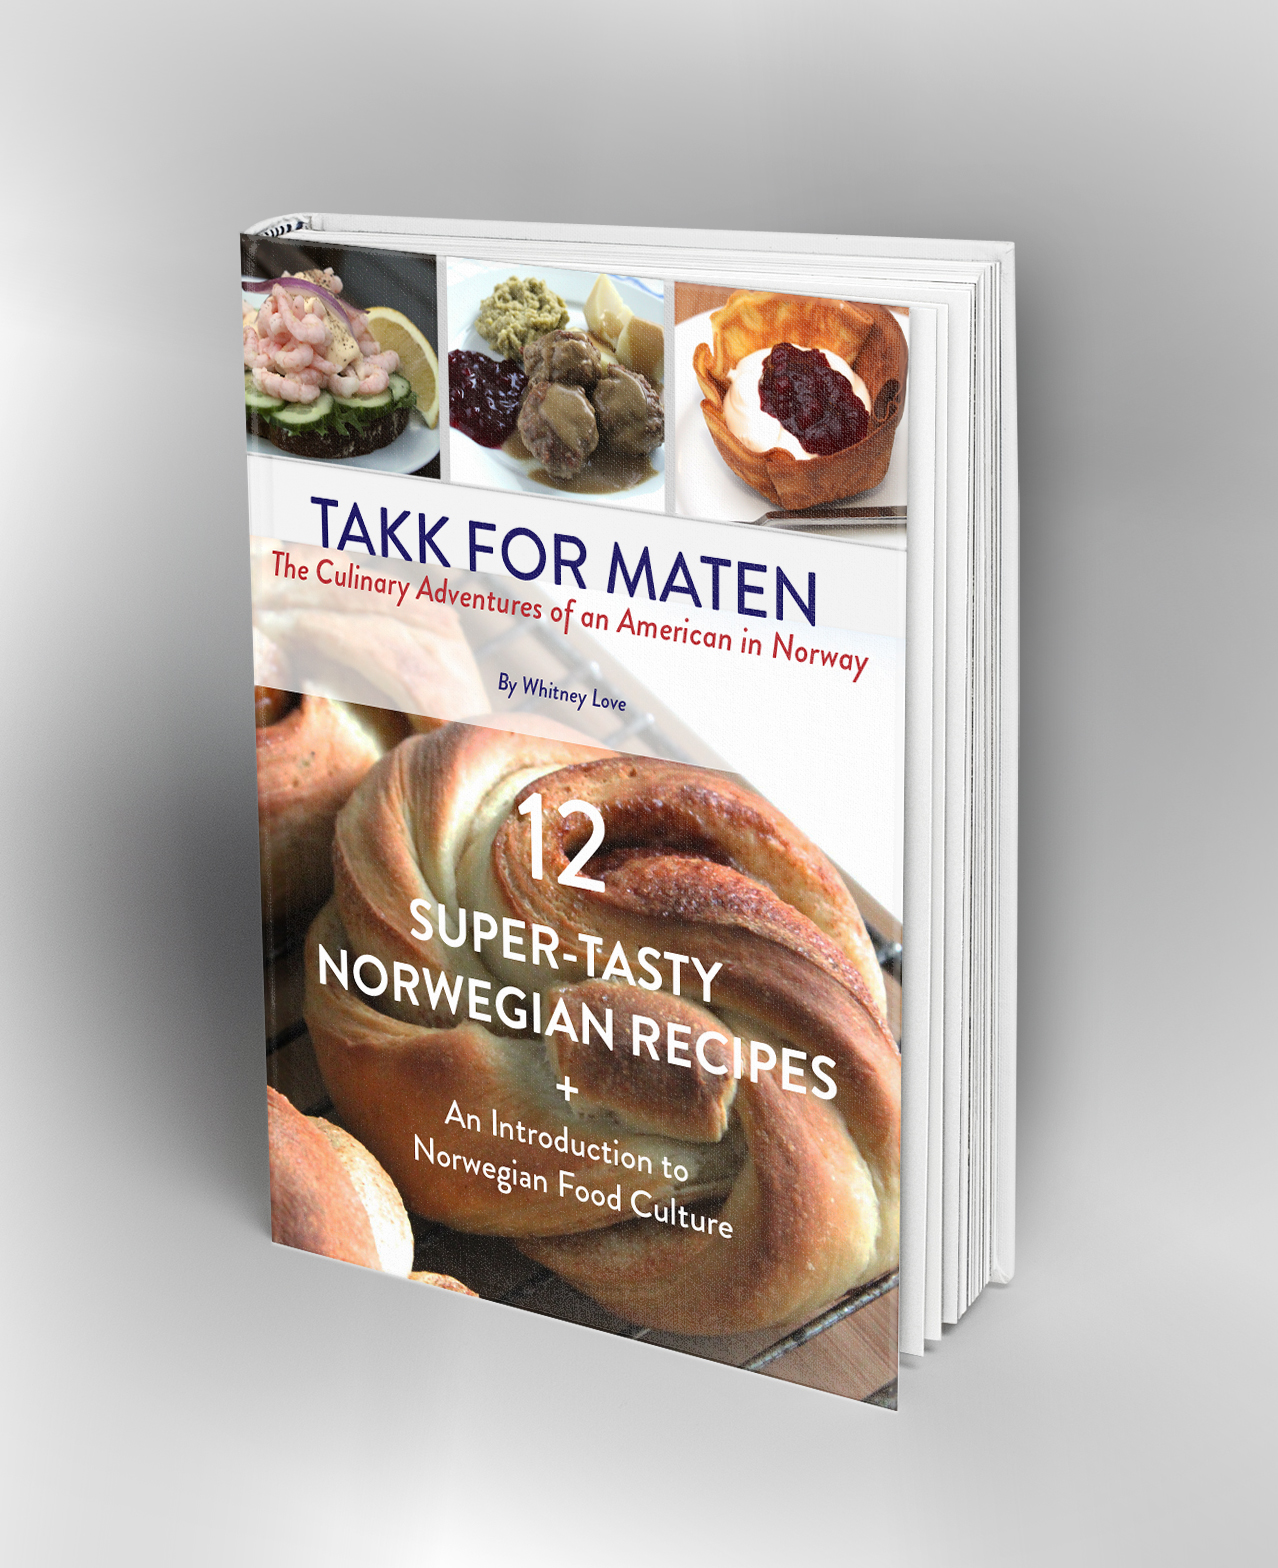 Announcing Takk for Maten, The Culinary Adventures of an American in Norway!